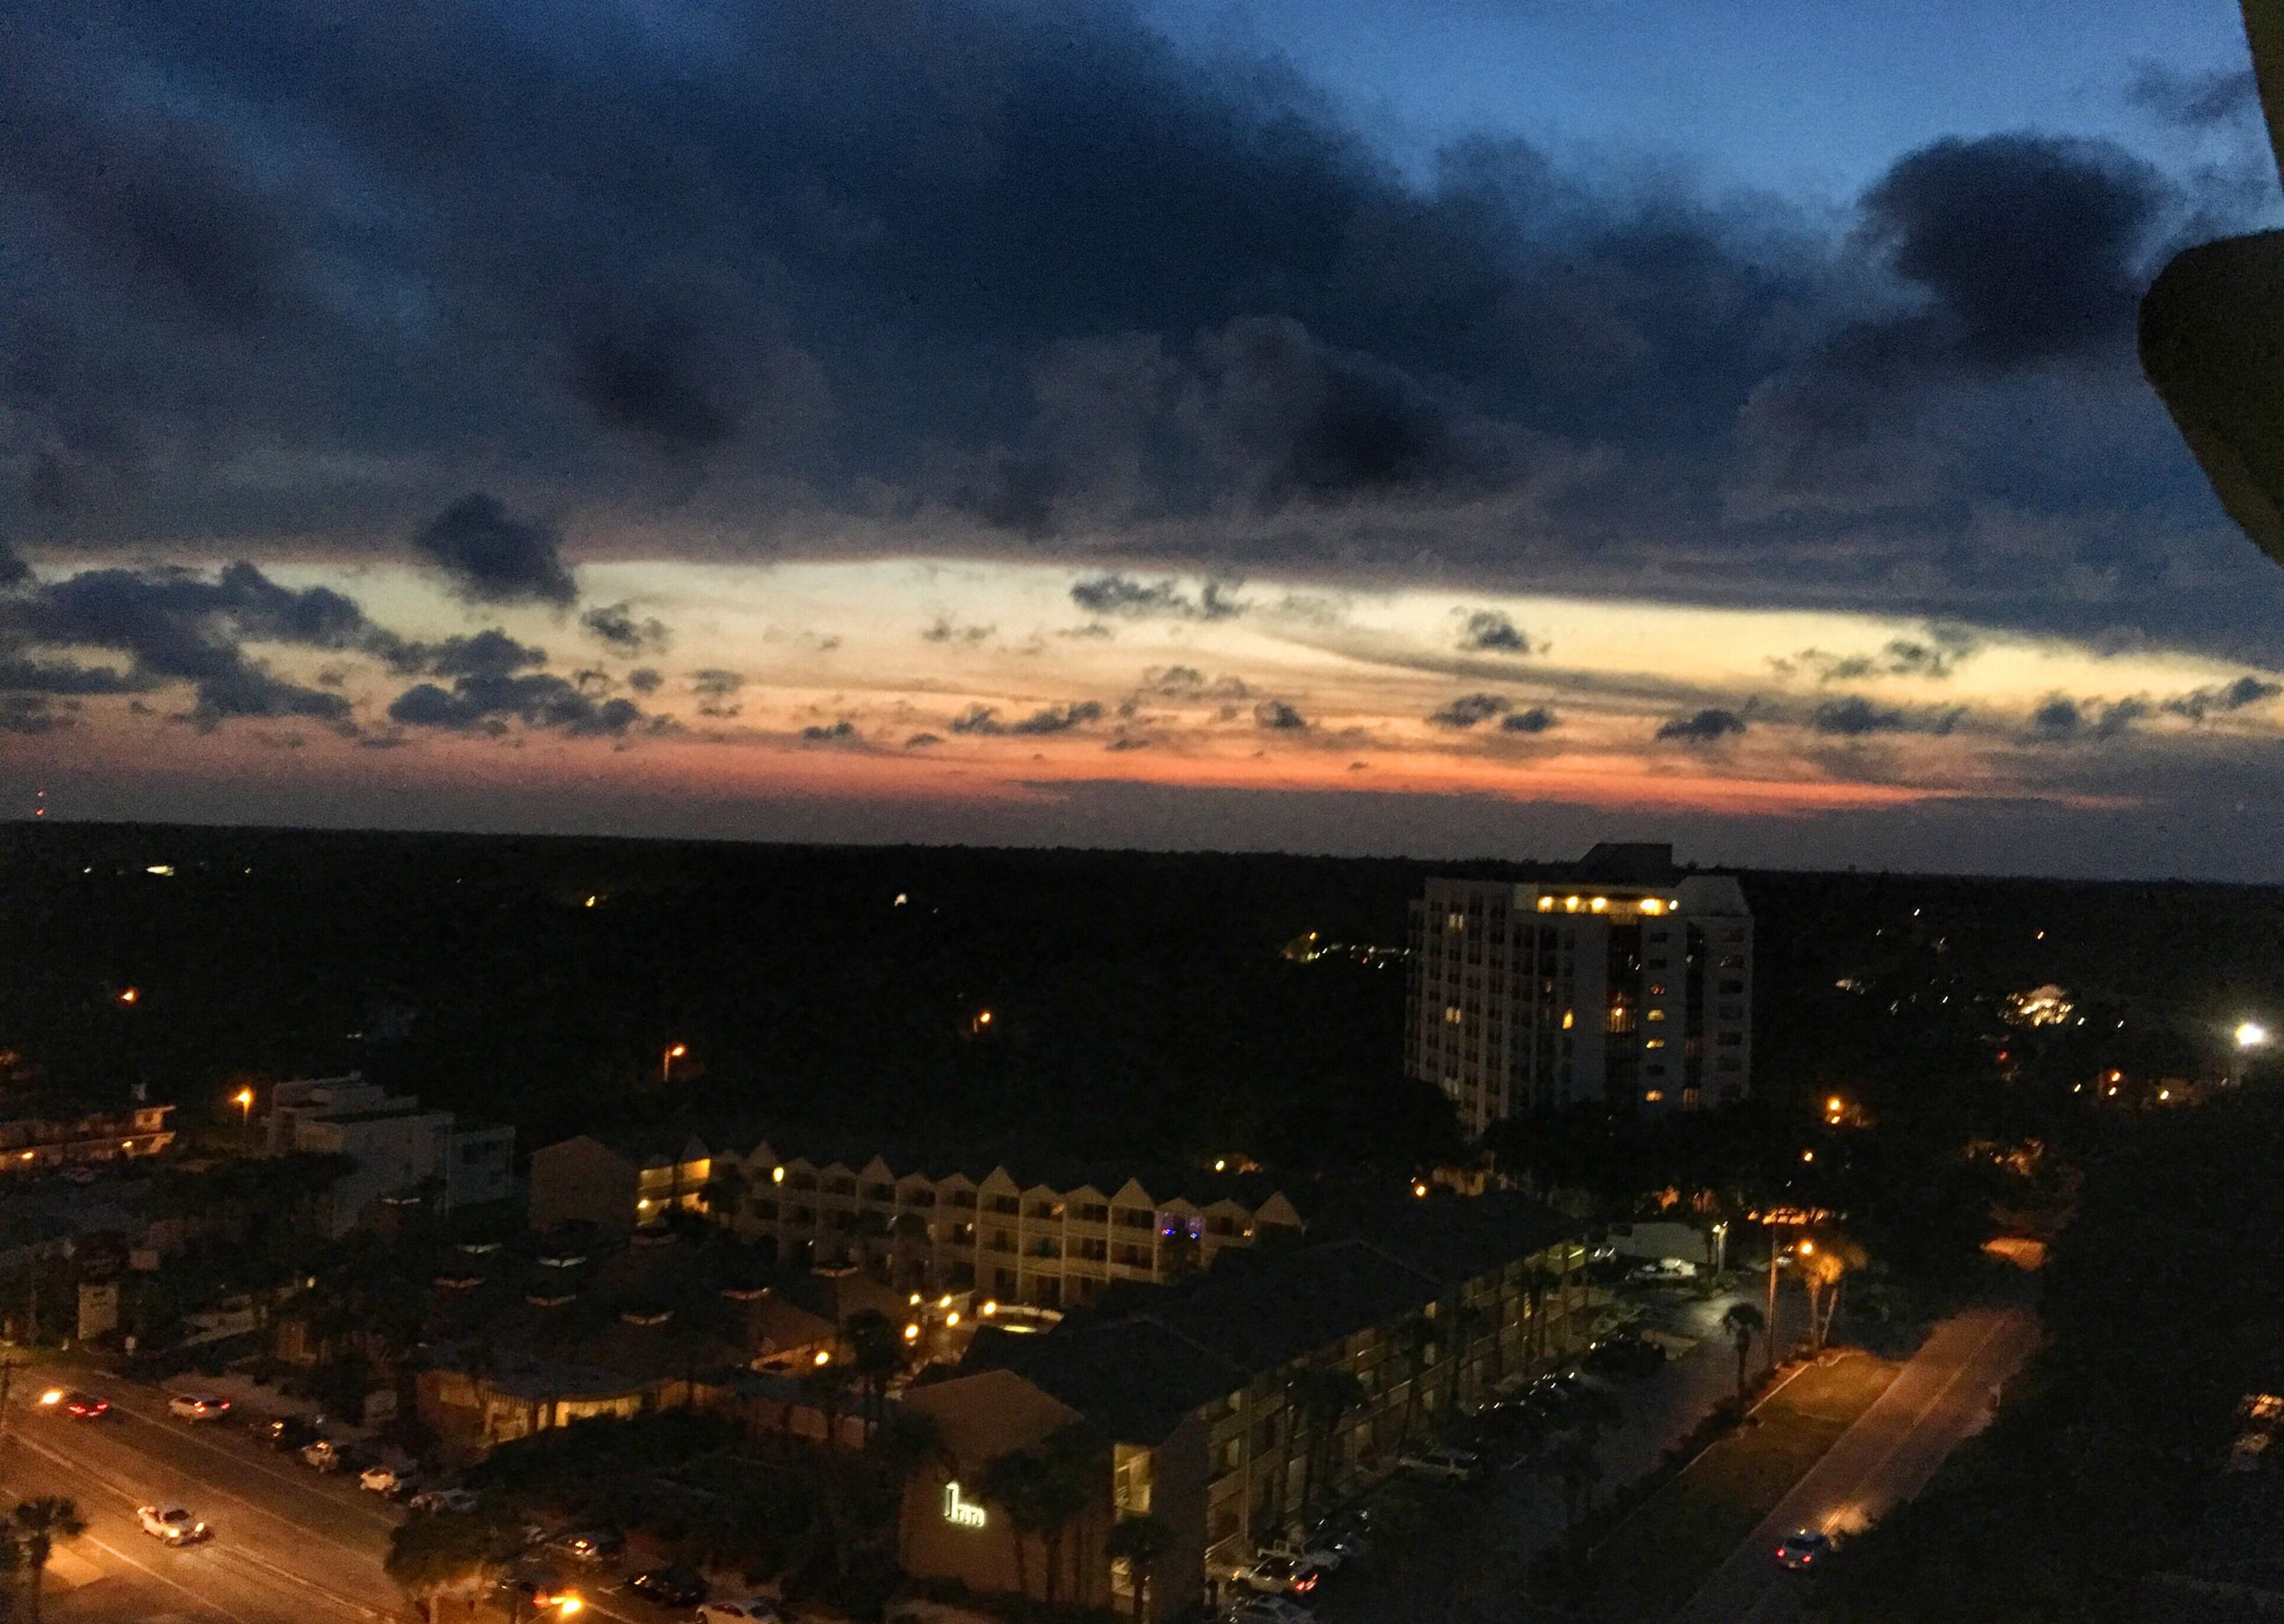 illuminated, city, sky, cityscape, architecture, built structure, cloud - sky, night, sunset, city life, residential building, residential district, cloudy, dramatic sky, aerial view, cloud, outdoors, weather, no people, landscape, dark, elevated view, nature, overcast